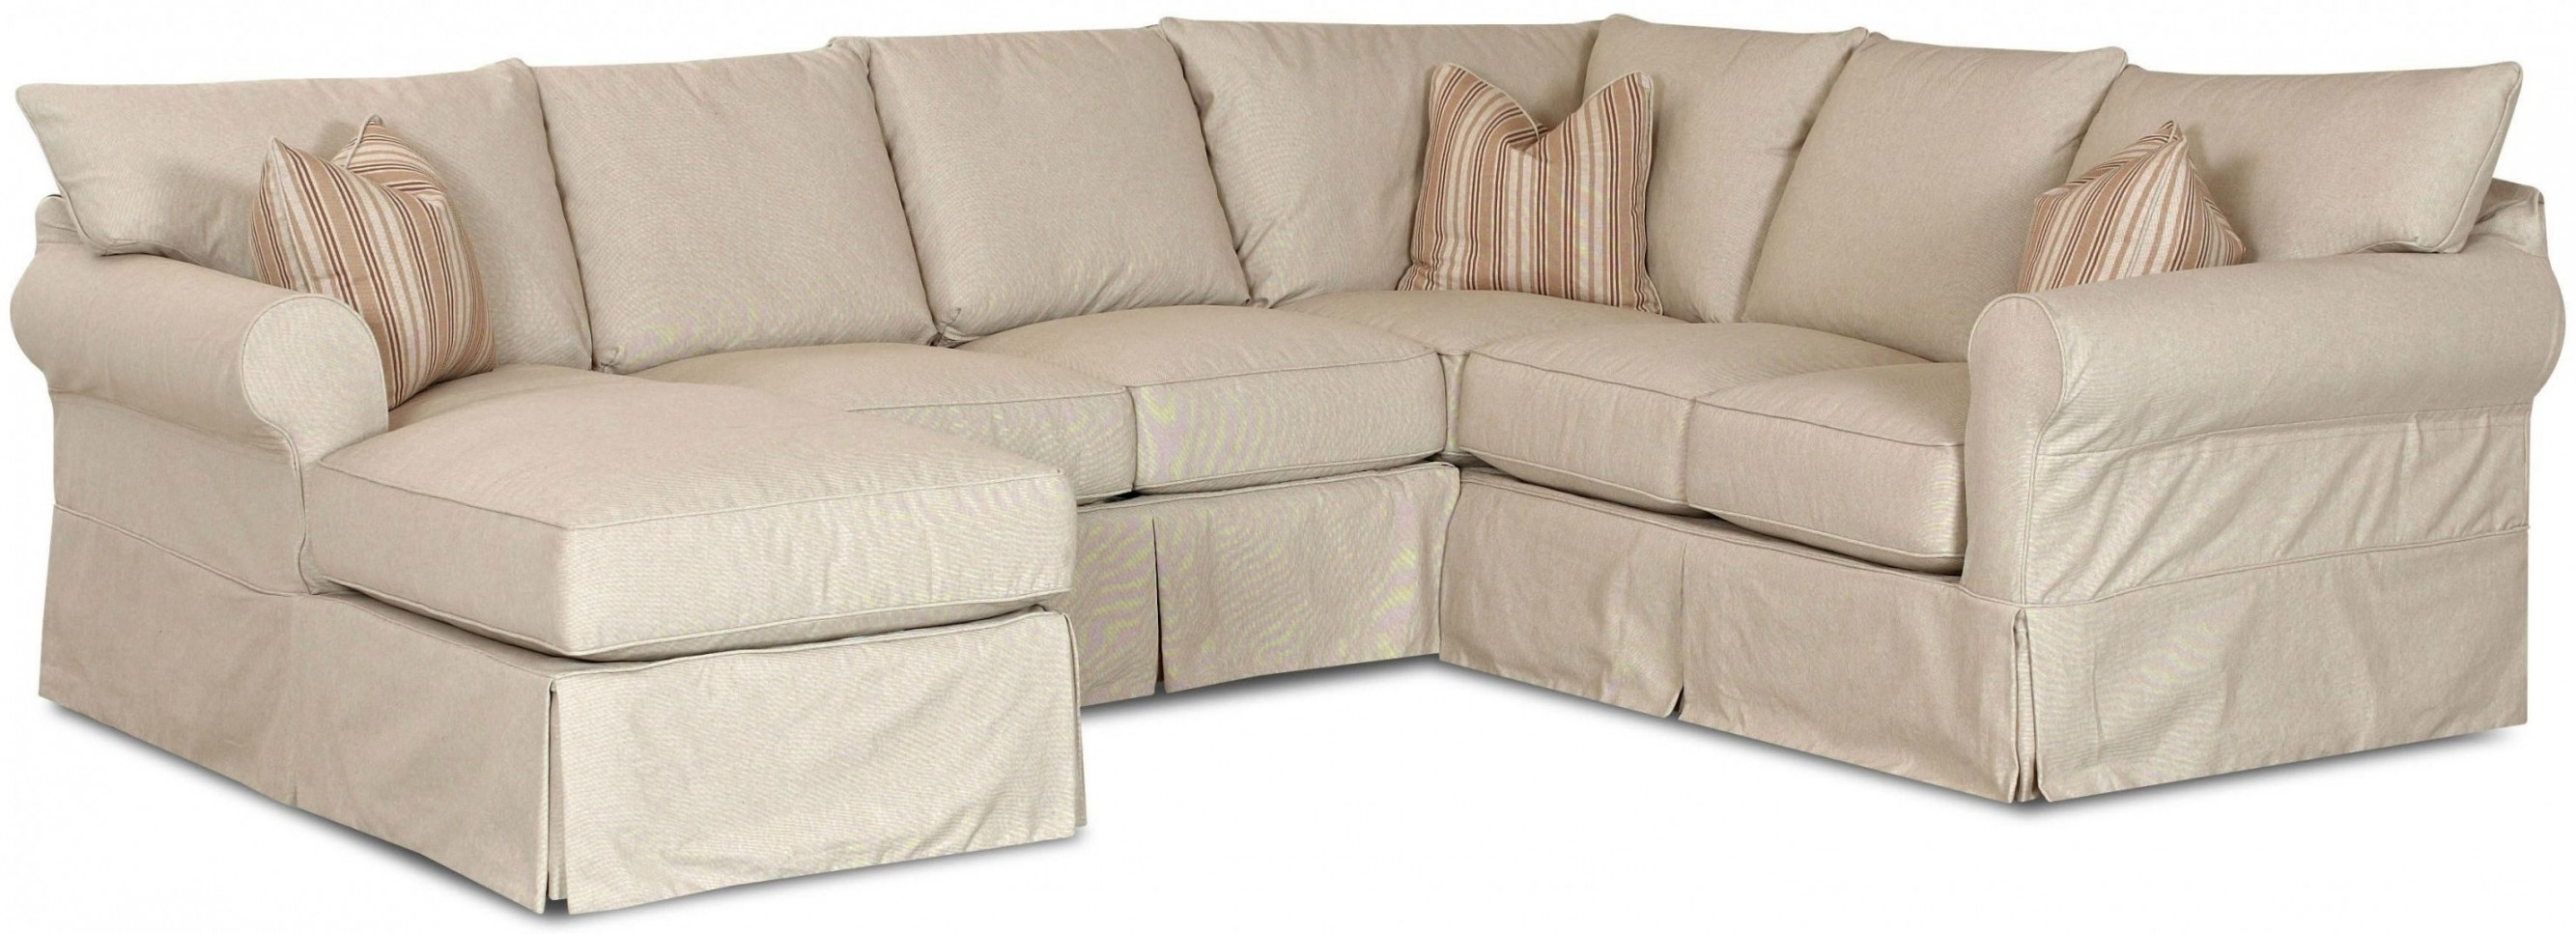 Chaise Lounge Sectional Sofa Covers | Home Design And Decorating Ideas for Sectional Sofas With Covers (Image 3 of 15)